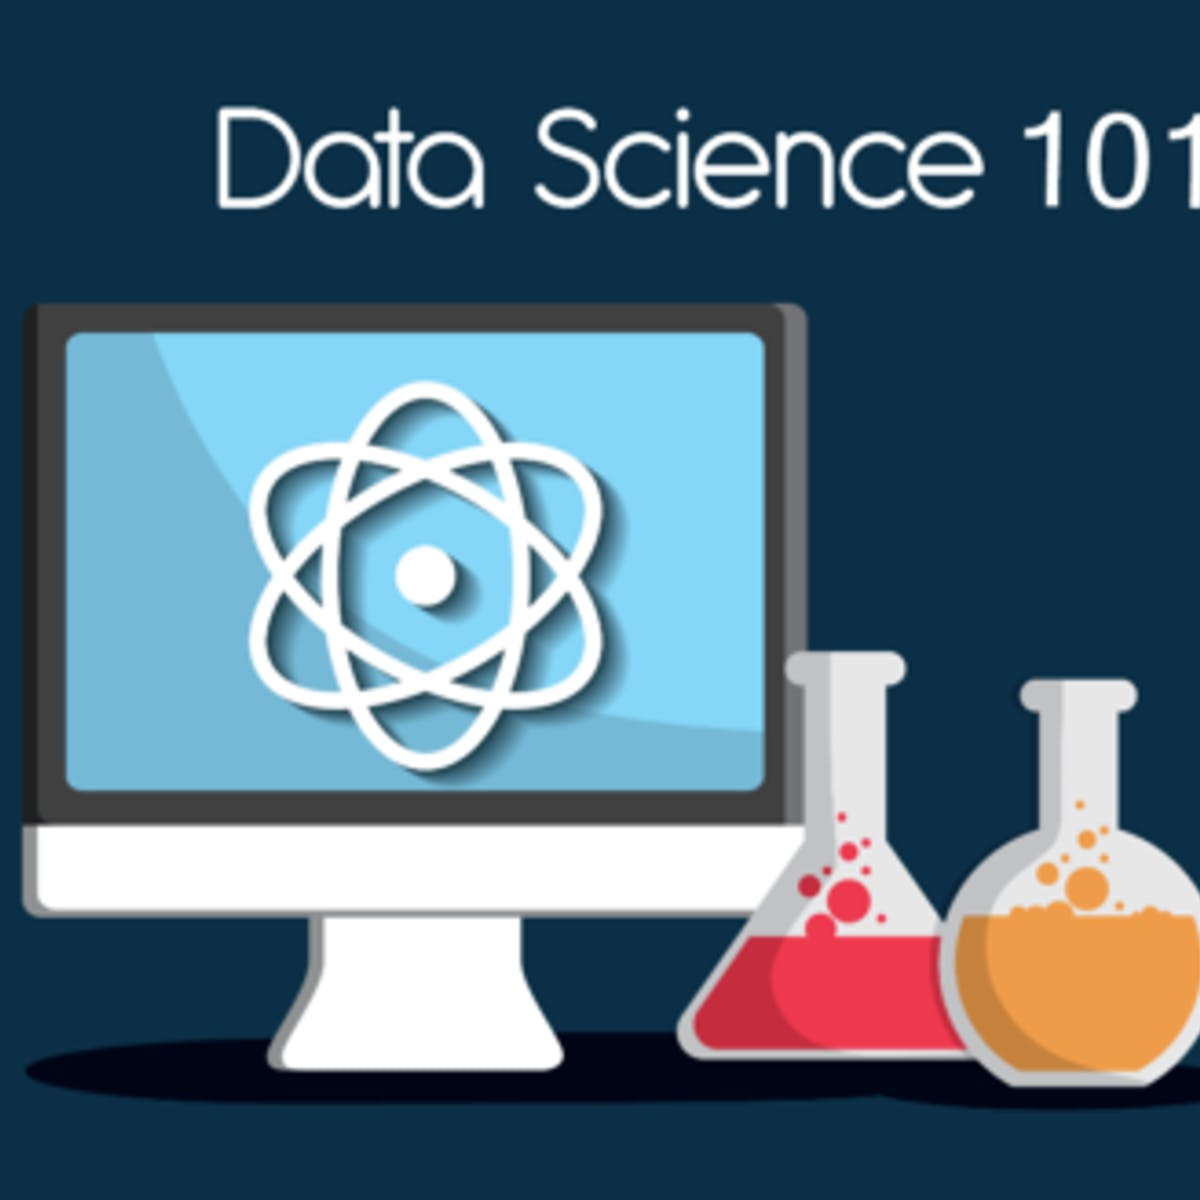 What is Data Science?